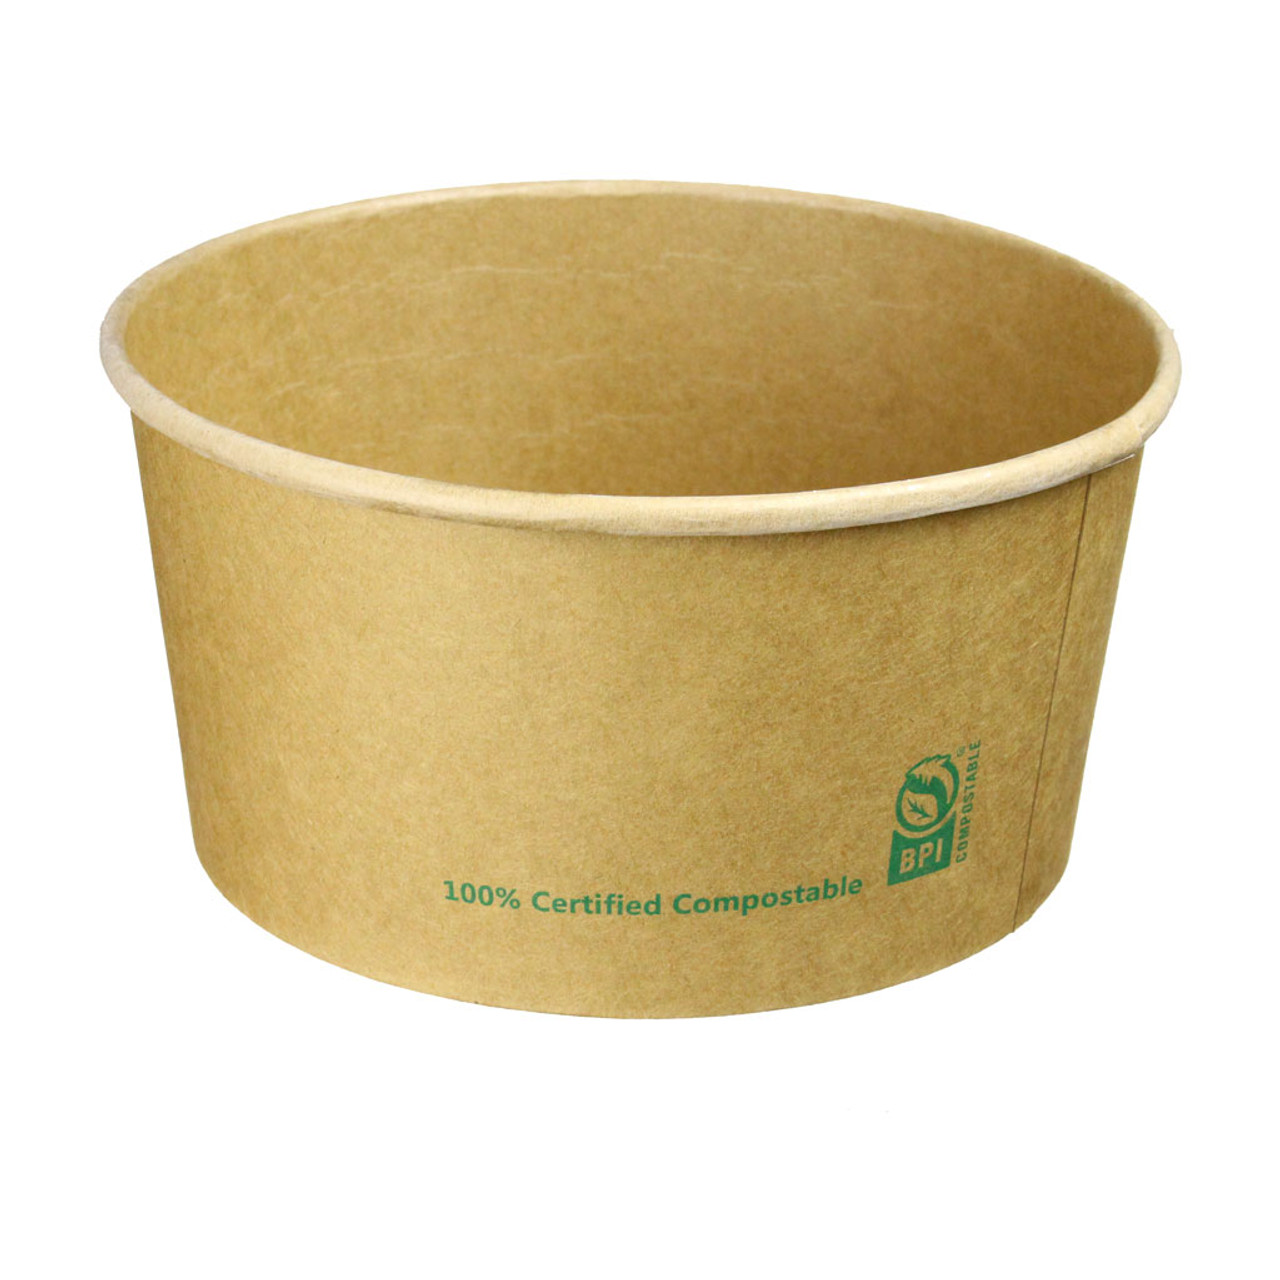 32oz Compostable Paper Salad Bowl